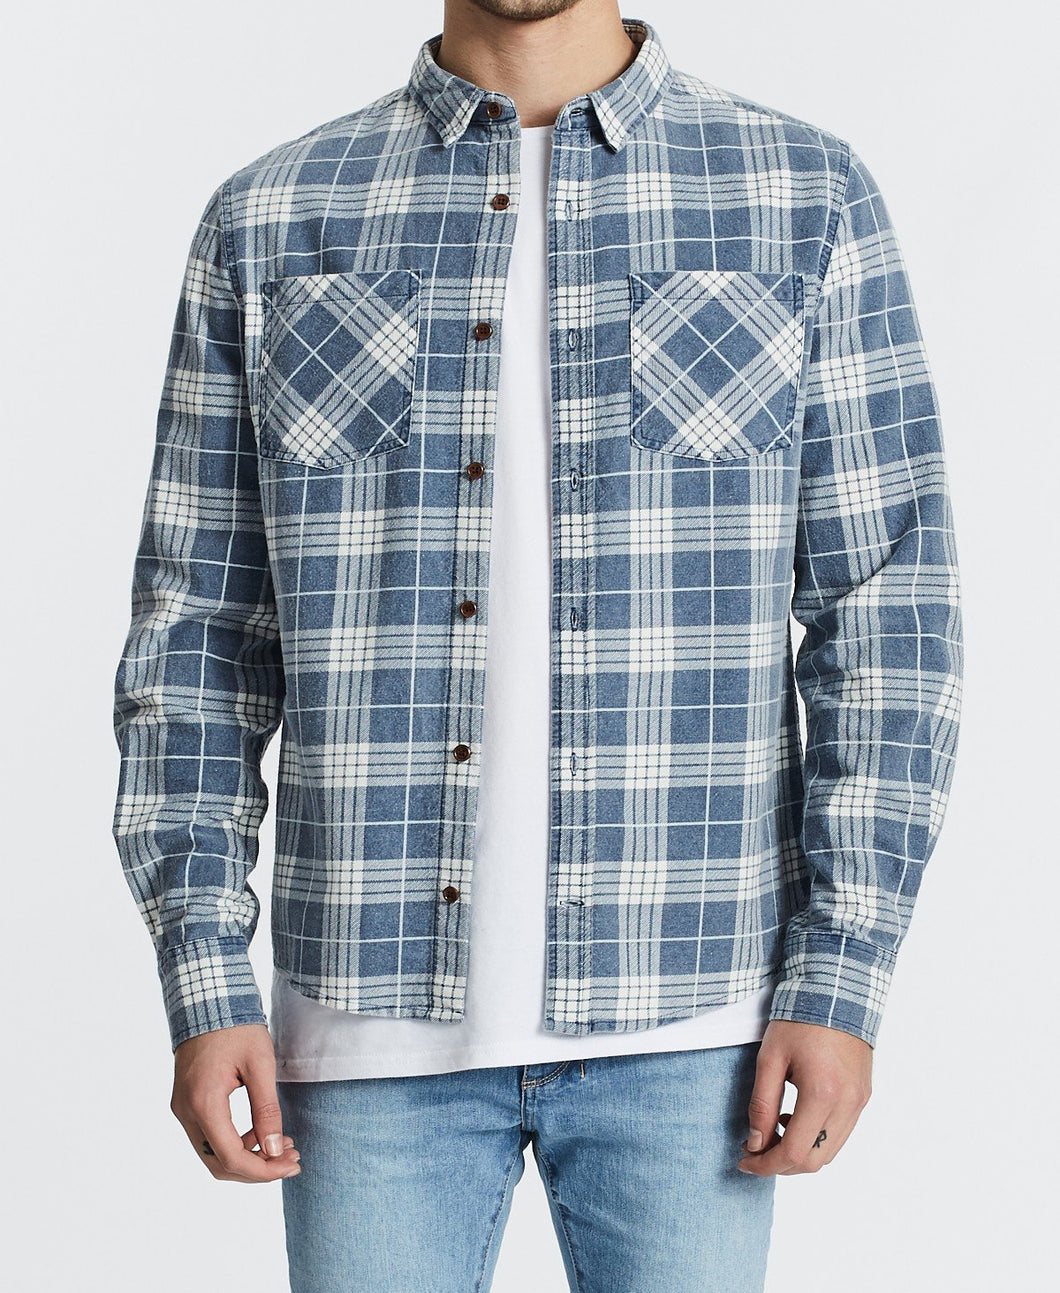 Nena & Pasadena Charge L/S Shirt